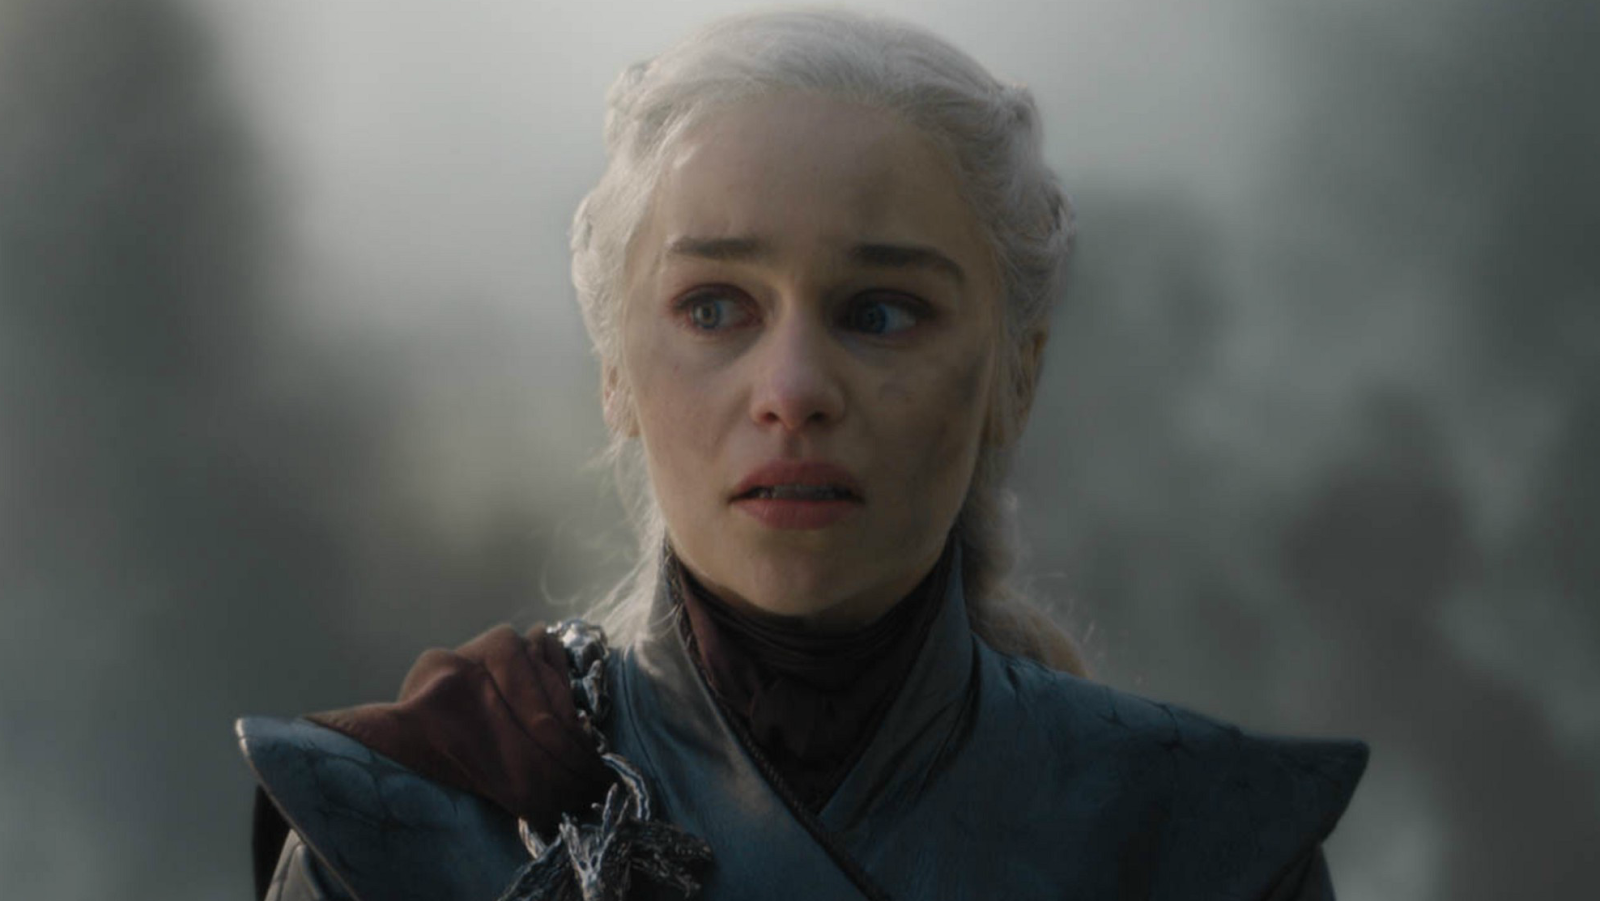 Eclectic Pop: Has 'Game of Thrones' Deserved Backlash For Daenerys' 'Star Wars' Style Twist?